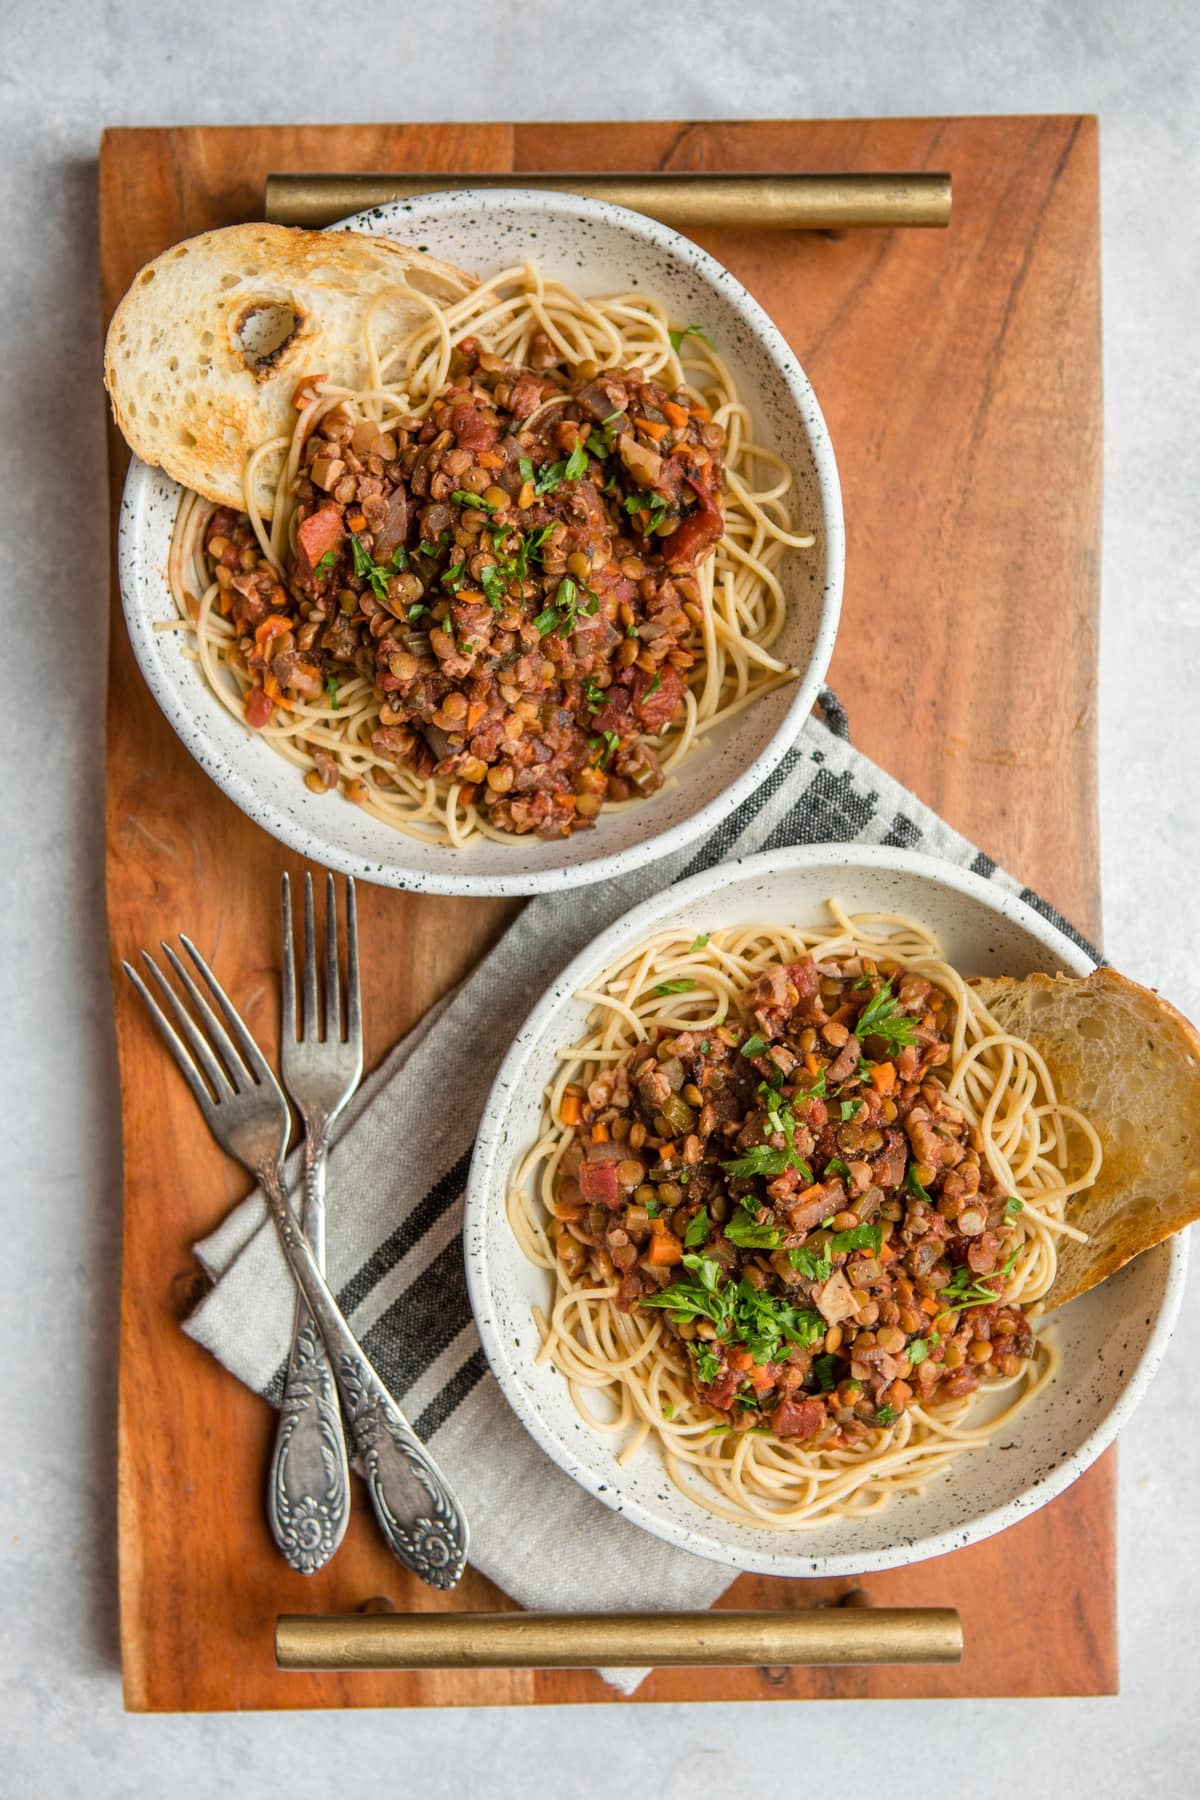 two bowls of lentil bolognese over pasta with toasted bread on white cutting board